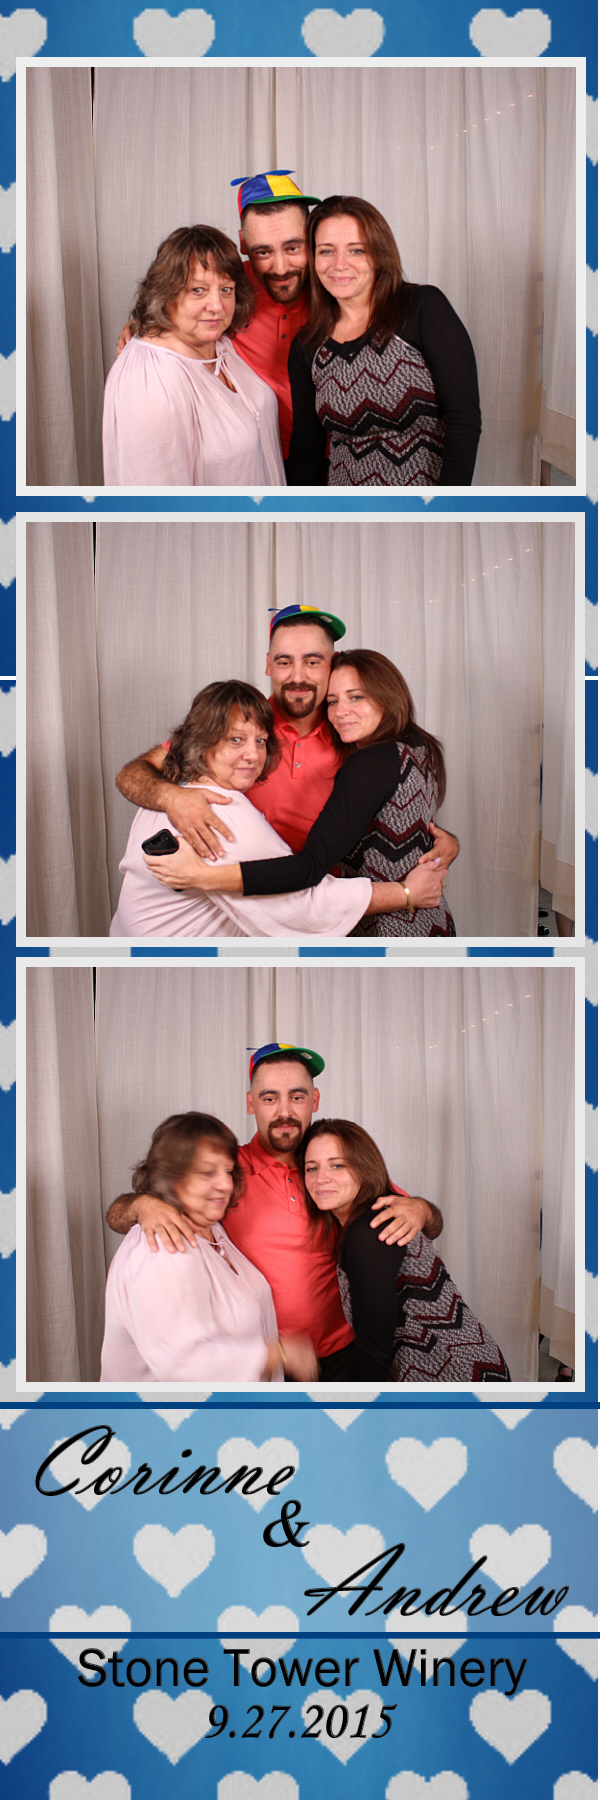 Guest House Events Photo Booth C&A (14).jpg